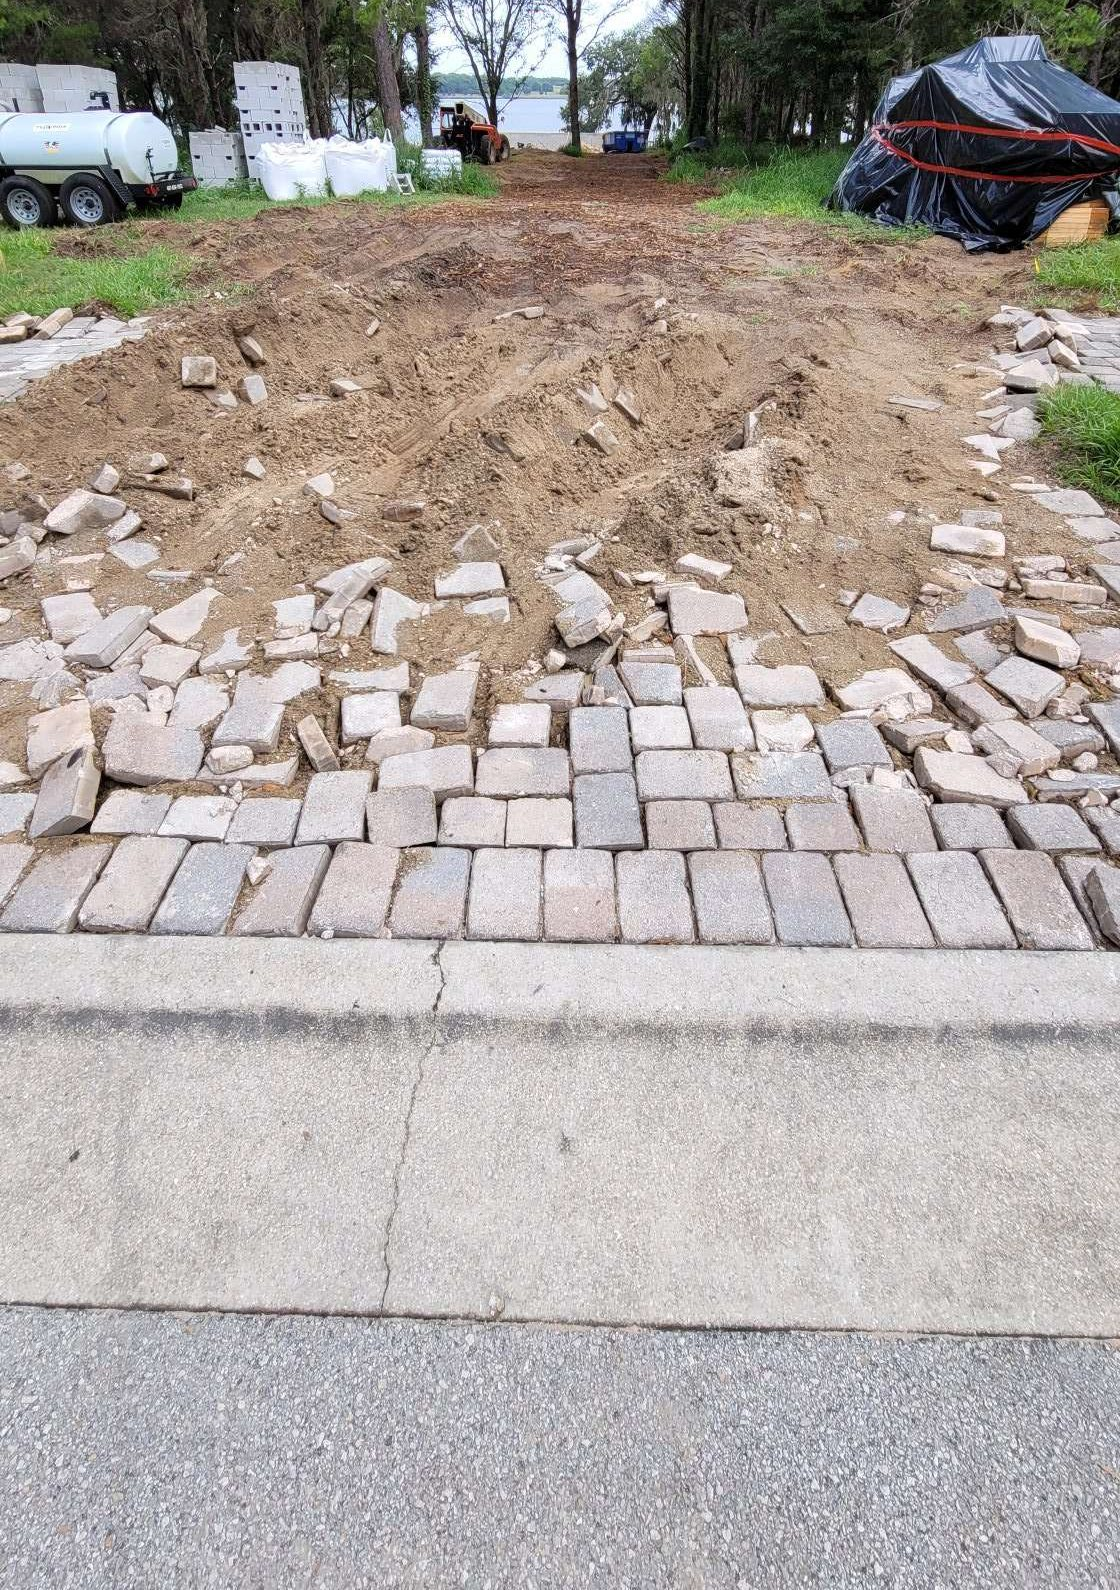 UNSAFE IN BELLA COLLINA - UNCARED FOR PAVEMENTS